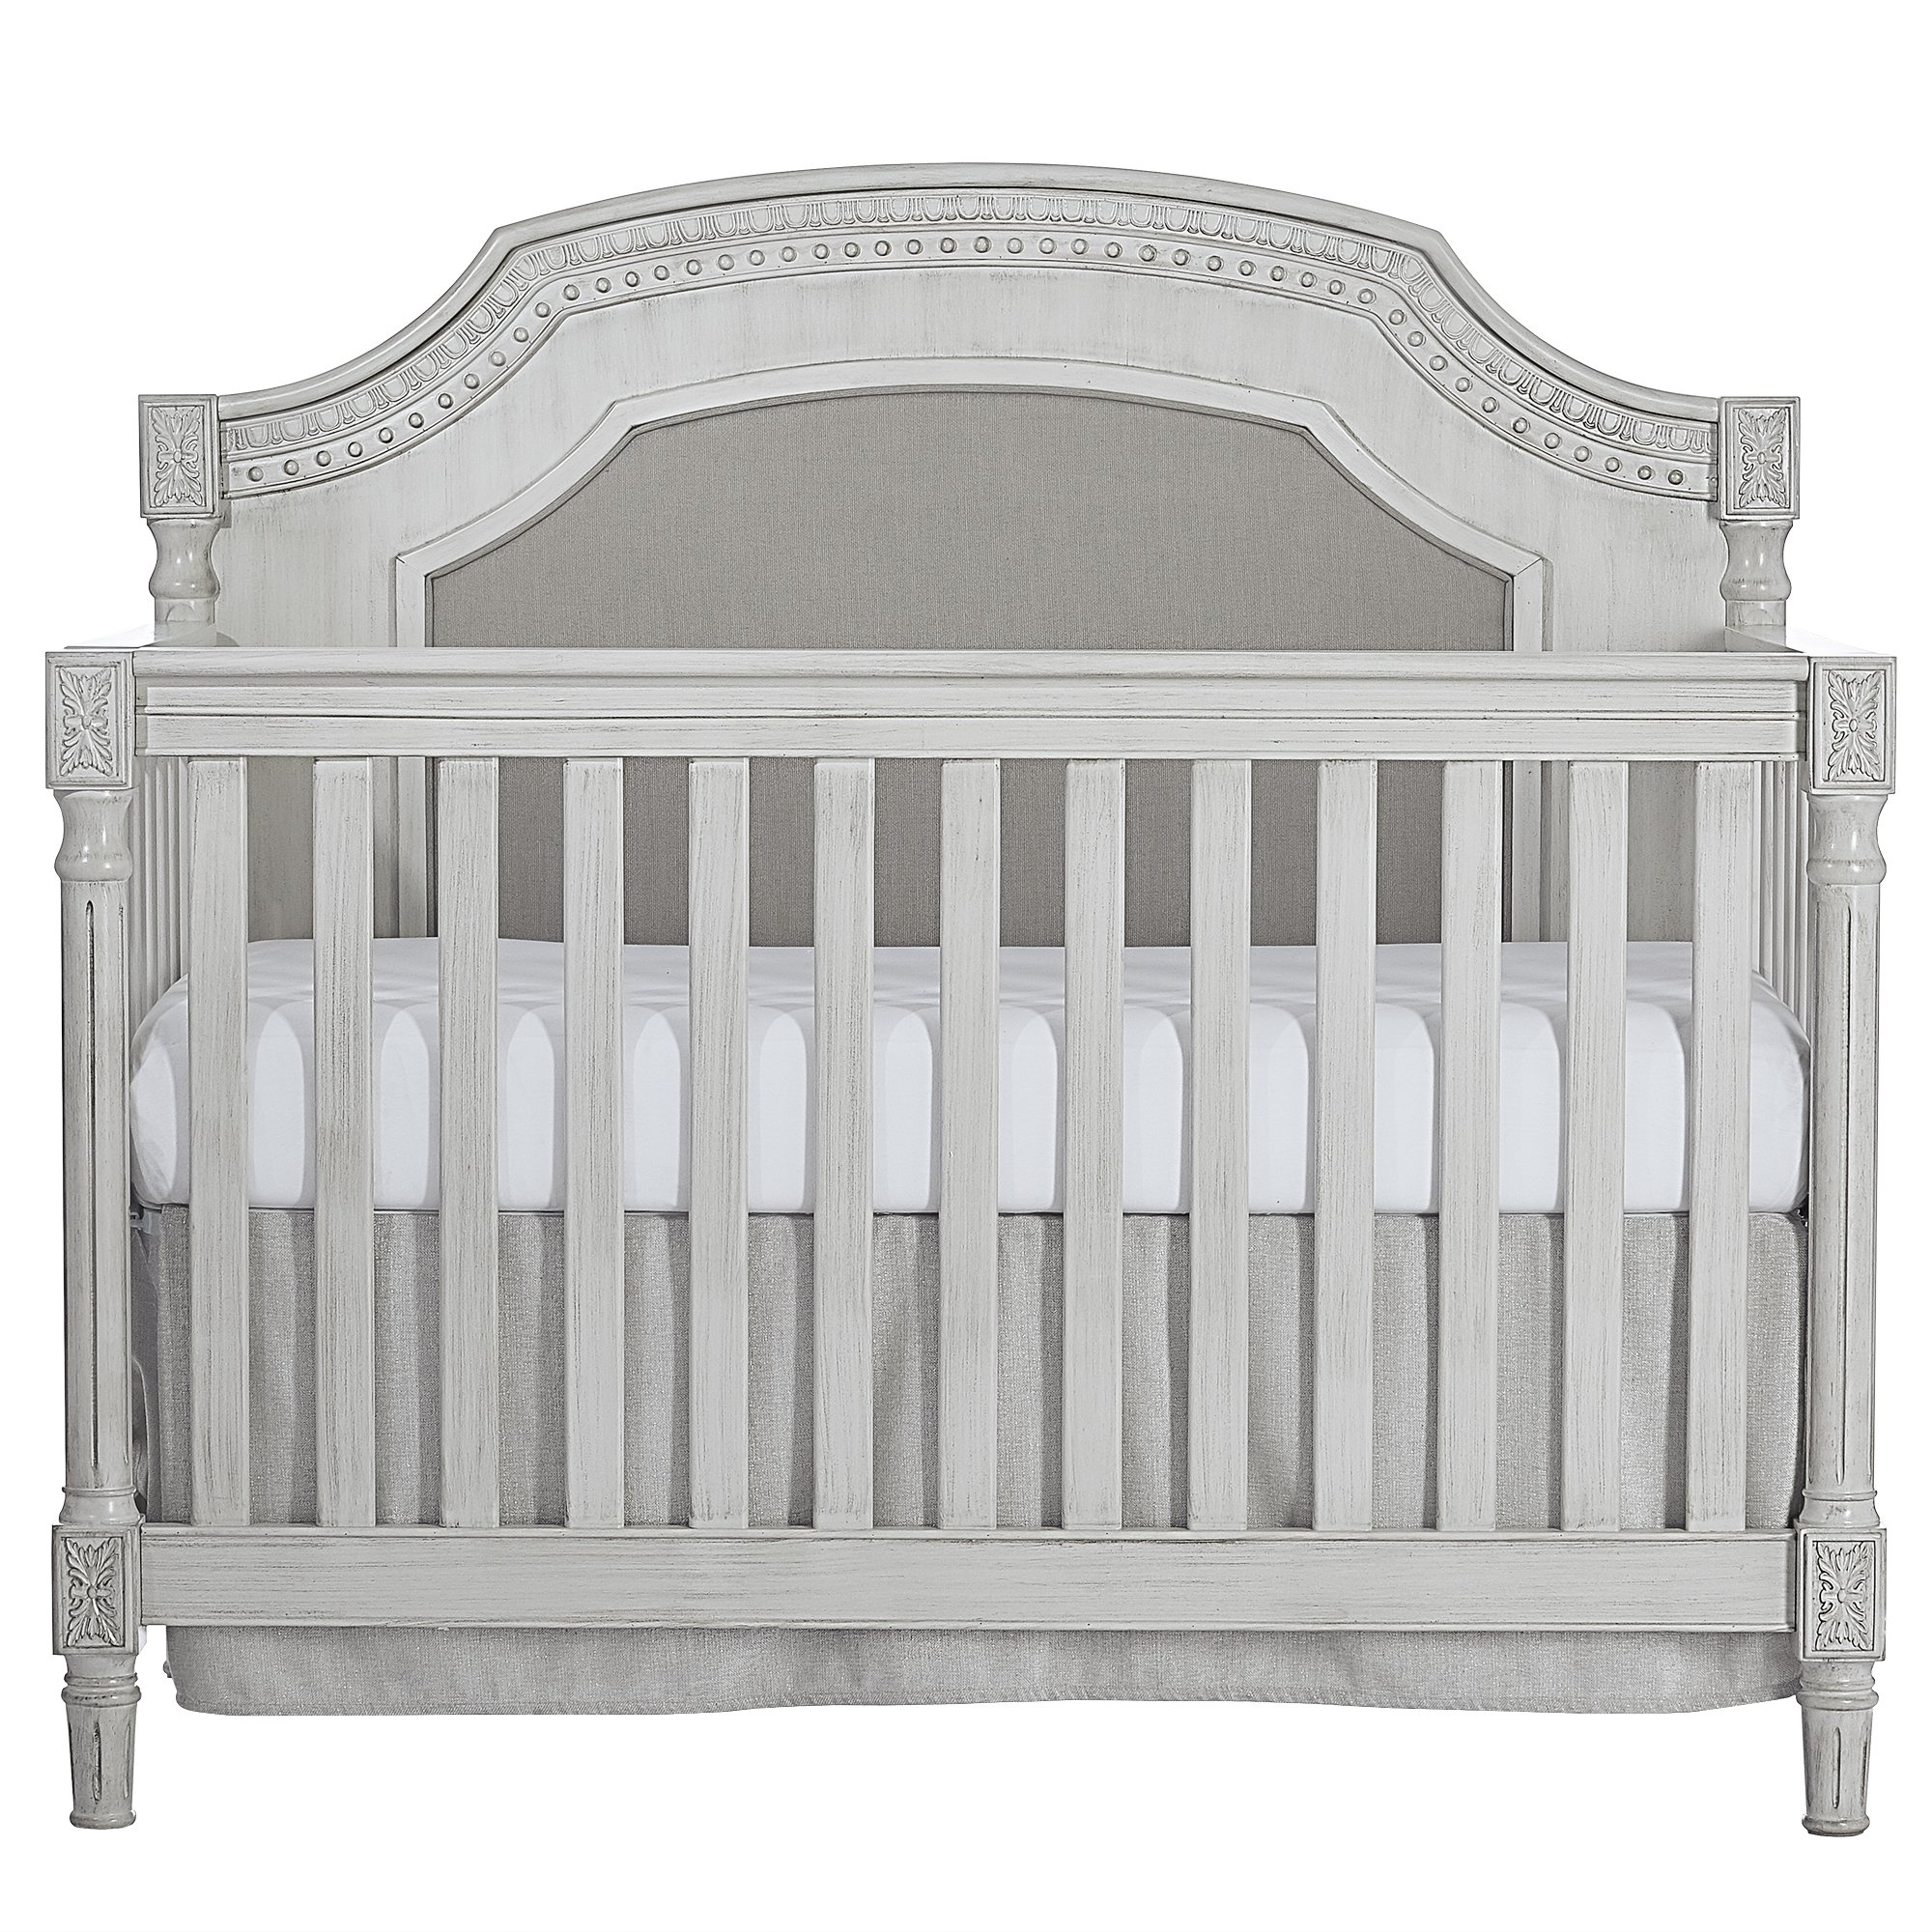 Evolur Julienne 5 in 1 Convertible Crib, Antique Grey Mist by Evolur